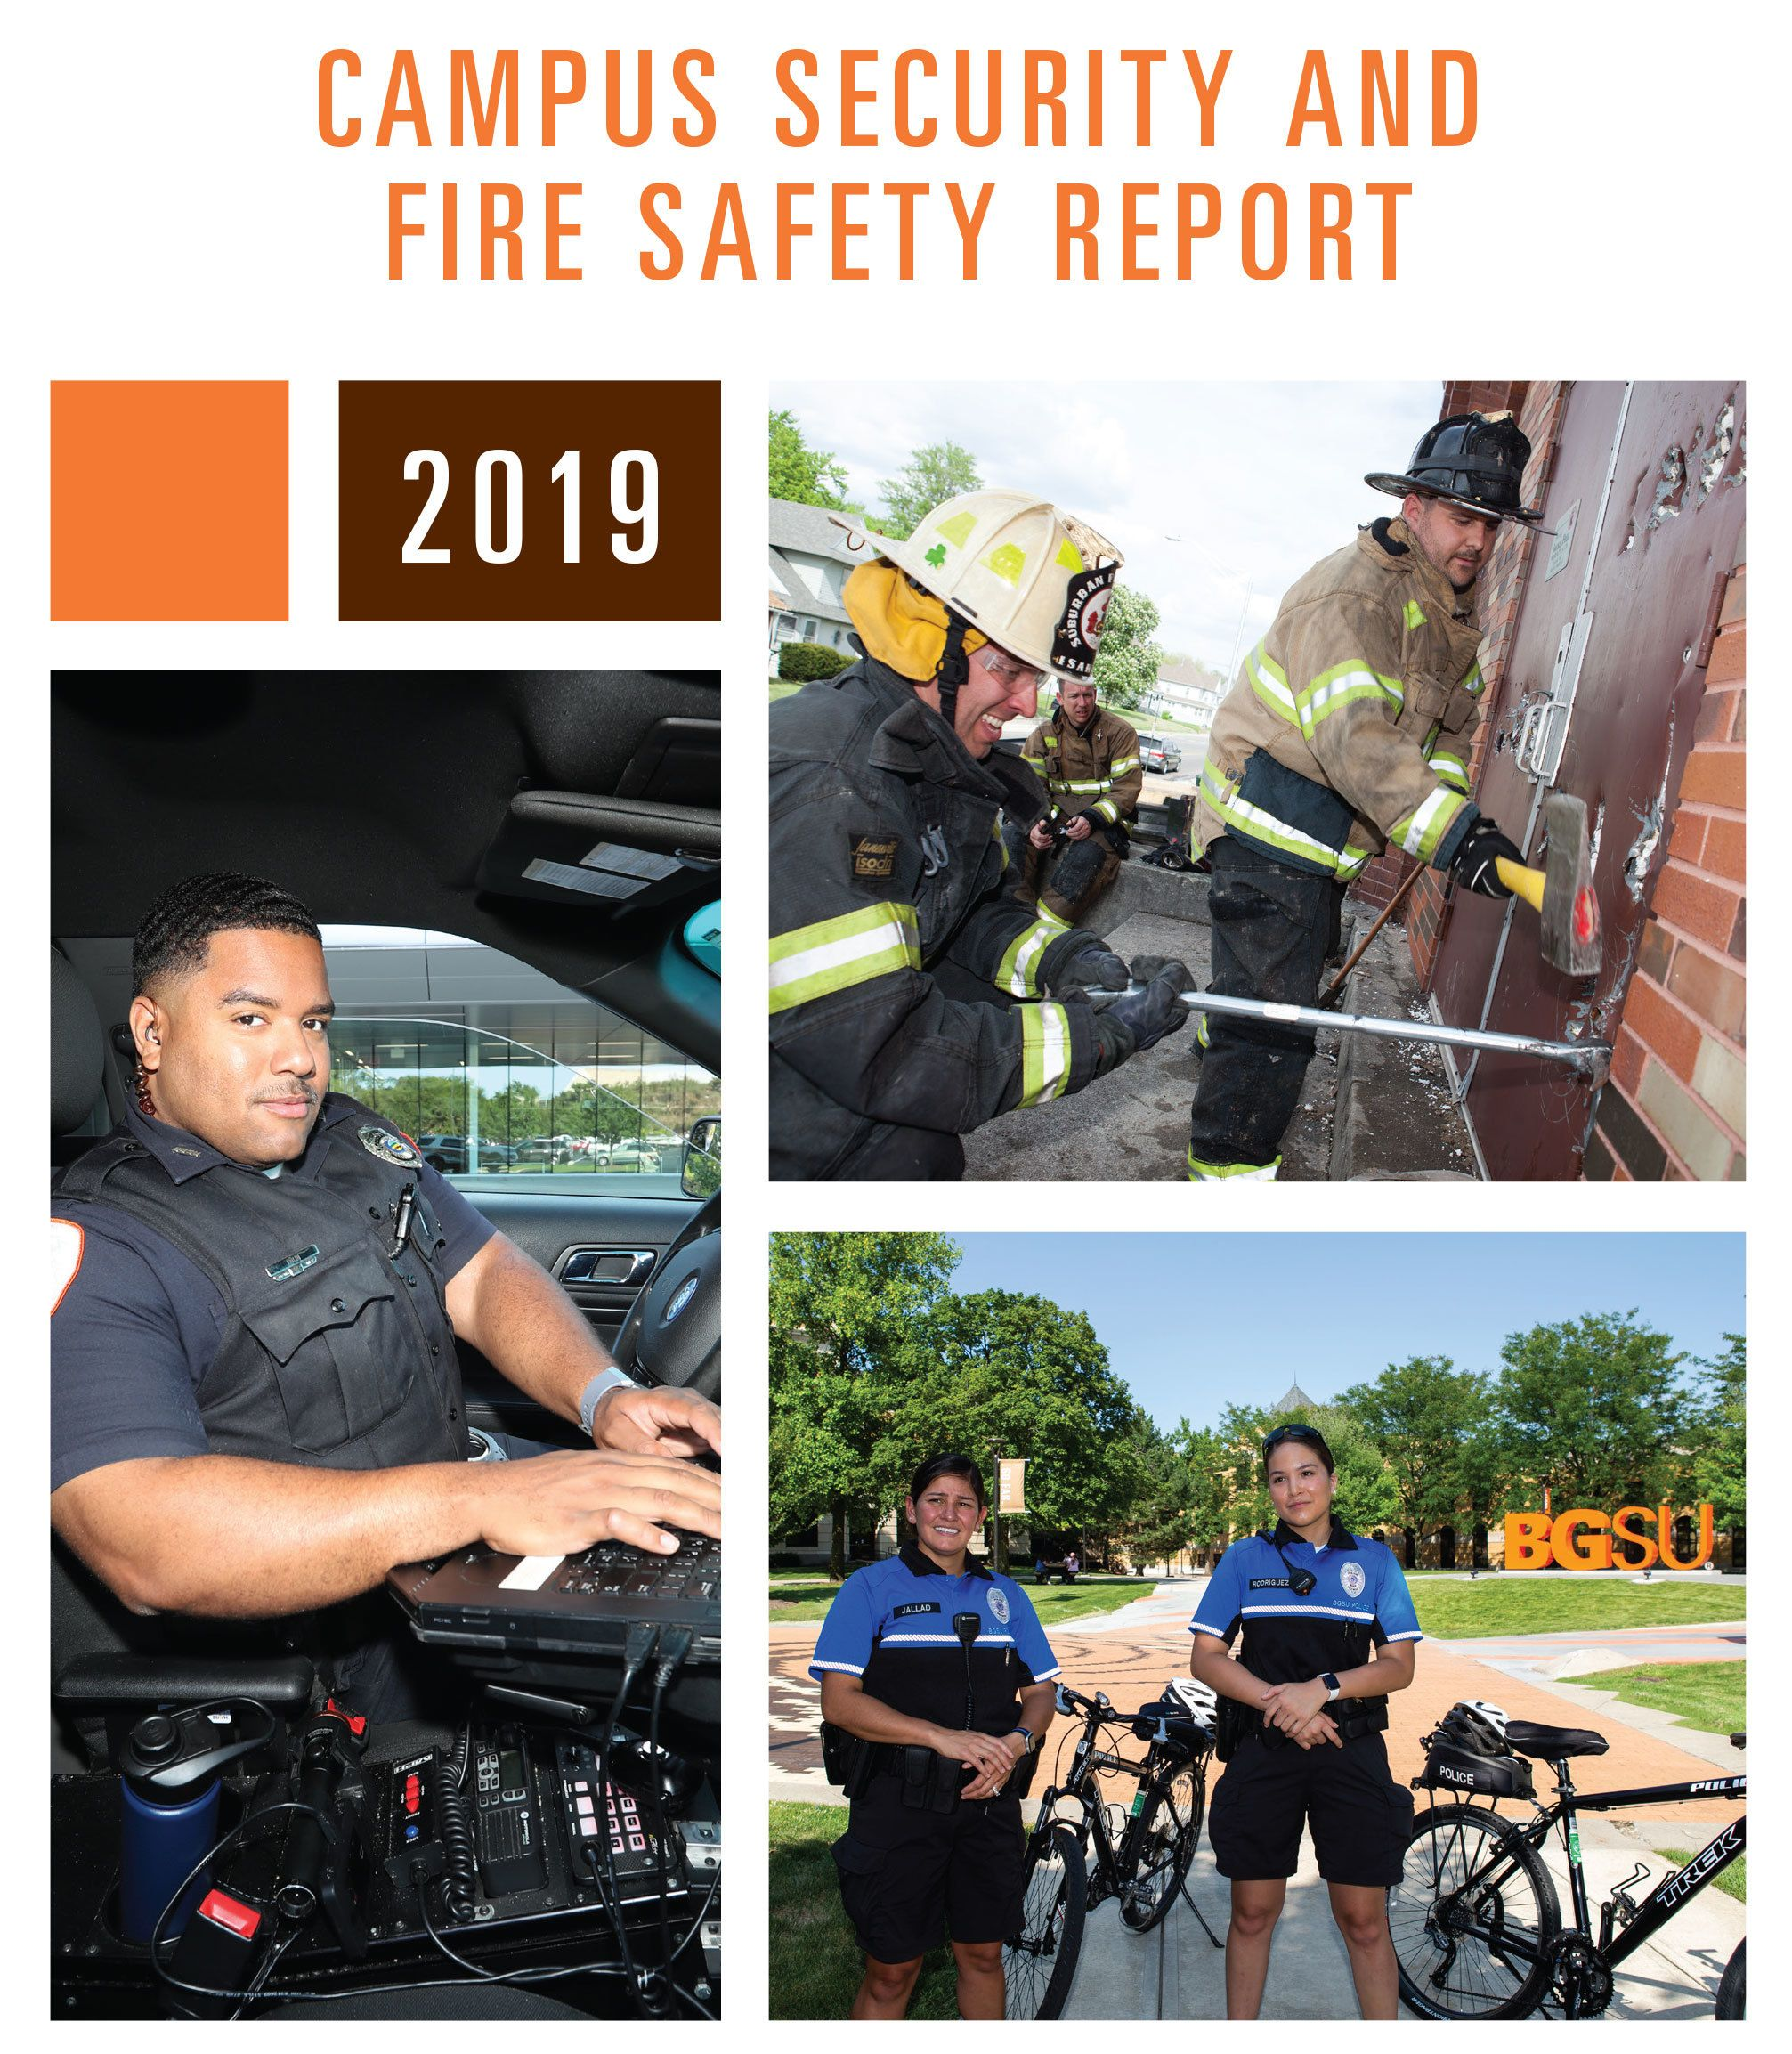 Campus Security and Fire Safety Report 2019